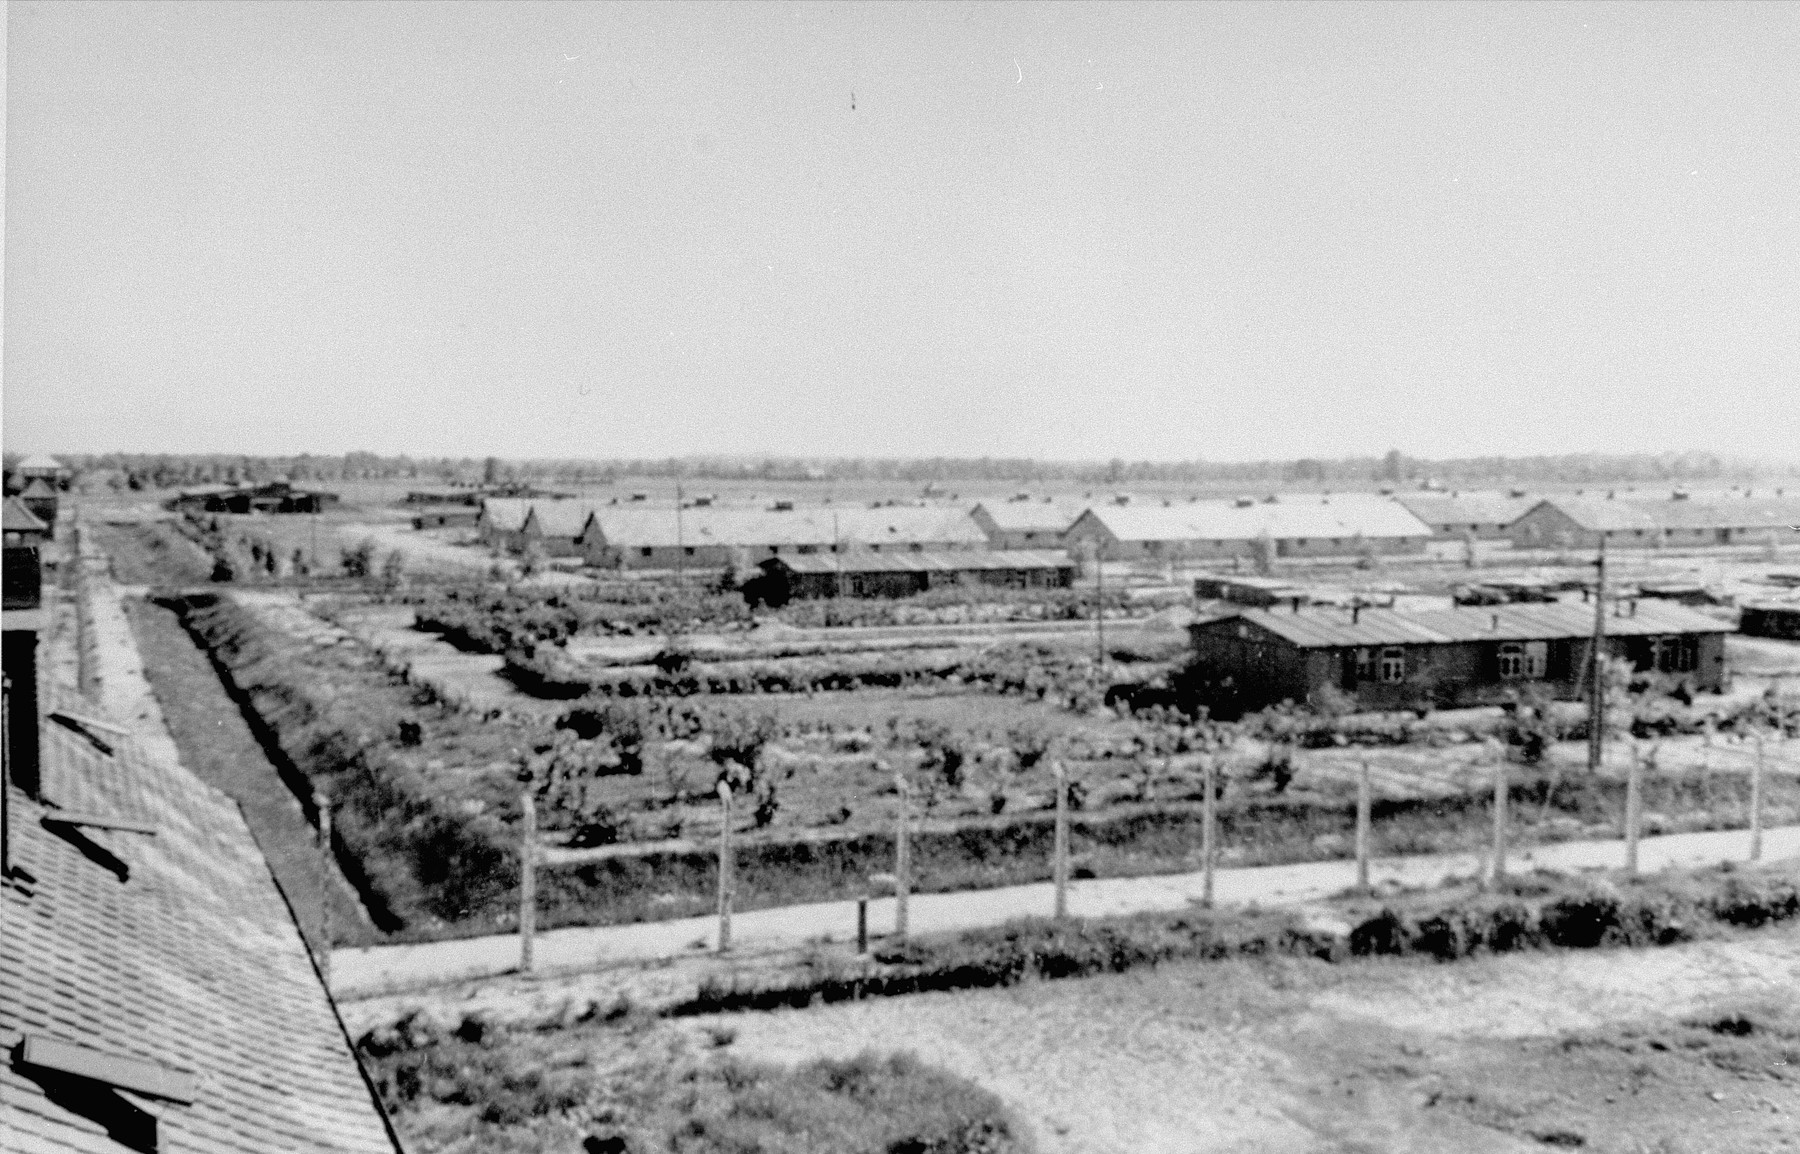 View of the Birkenau B-IA section of the camp, from the main watch tower (Death Gate) with the Lagerstrasse on the foreground and in the background the Kartoffelbunker, the Wascheraum, blocks 25, 26 and 27, the infirmary, remains of the block 29 for infected inmates and the x-ray block.